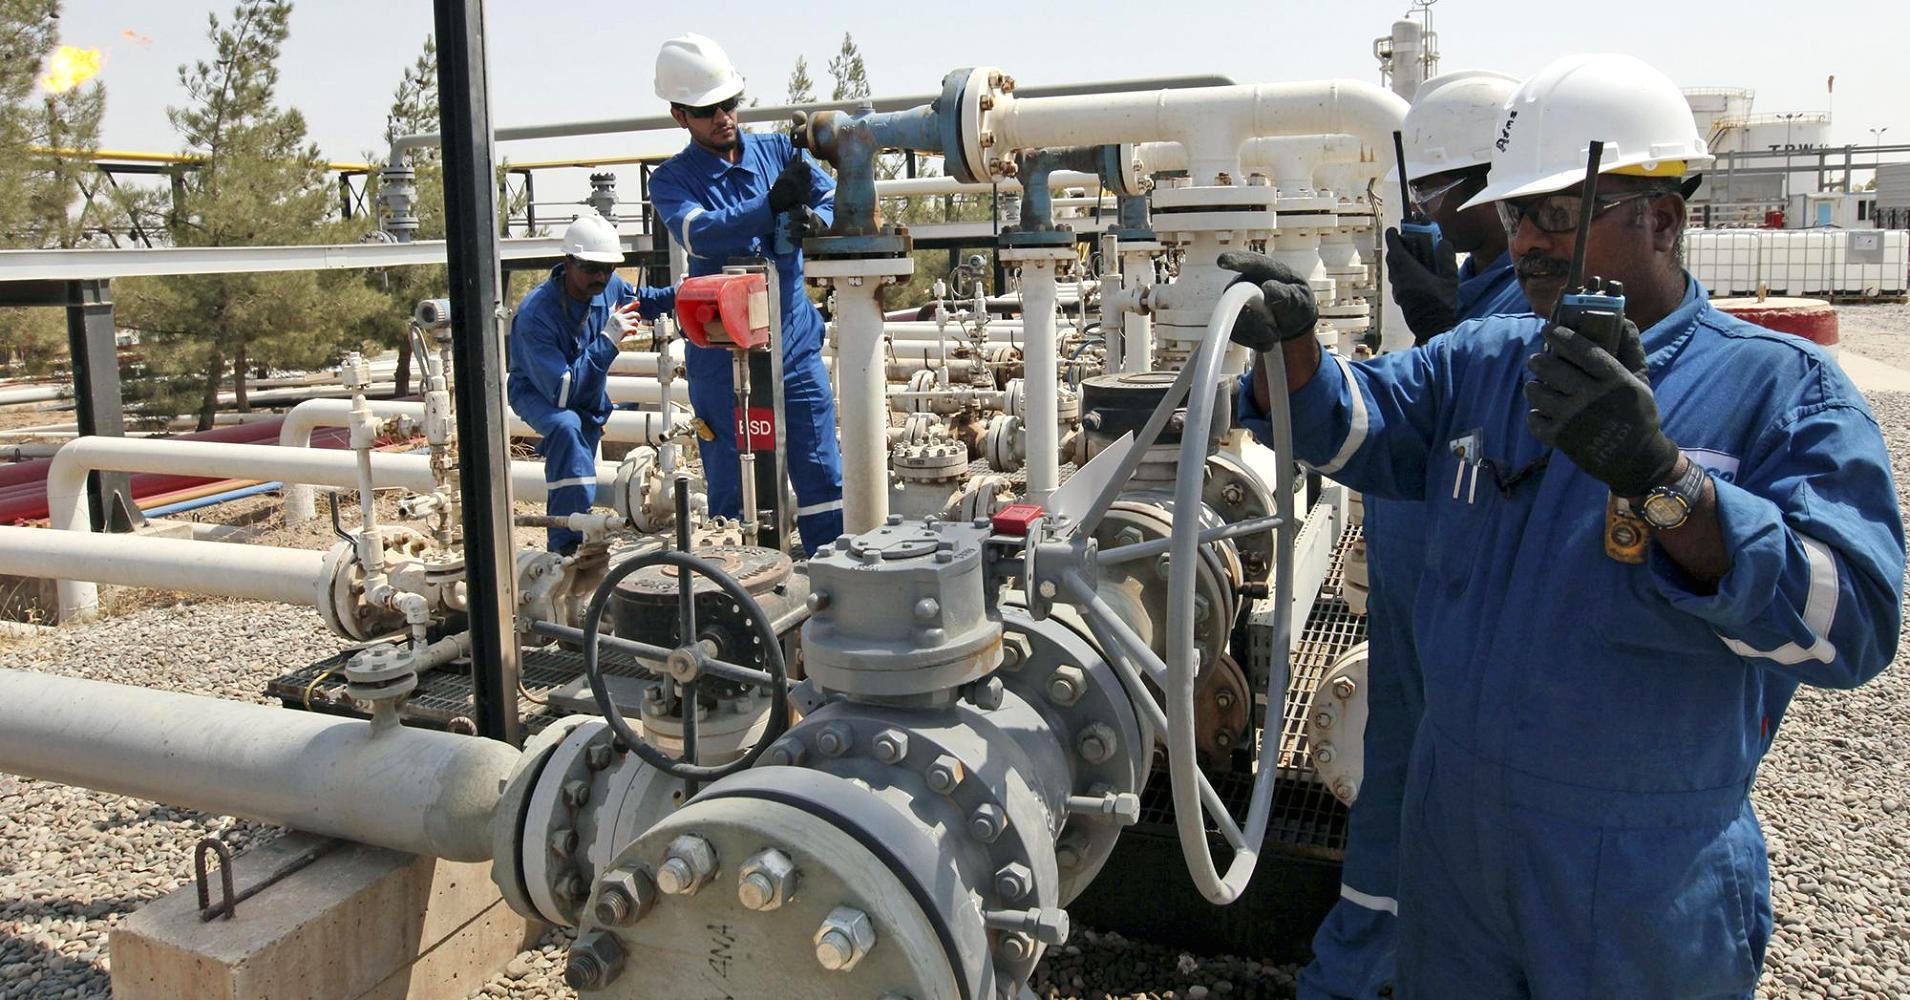 Will Kurdistan sell oil if Baghdad doesn't pay?